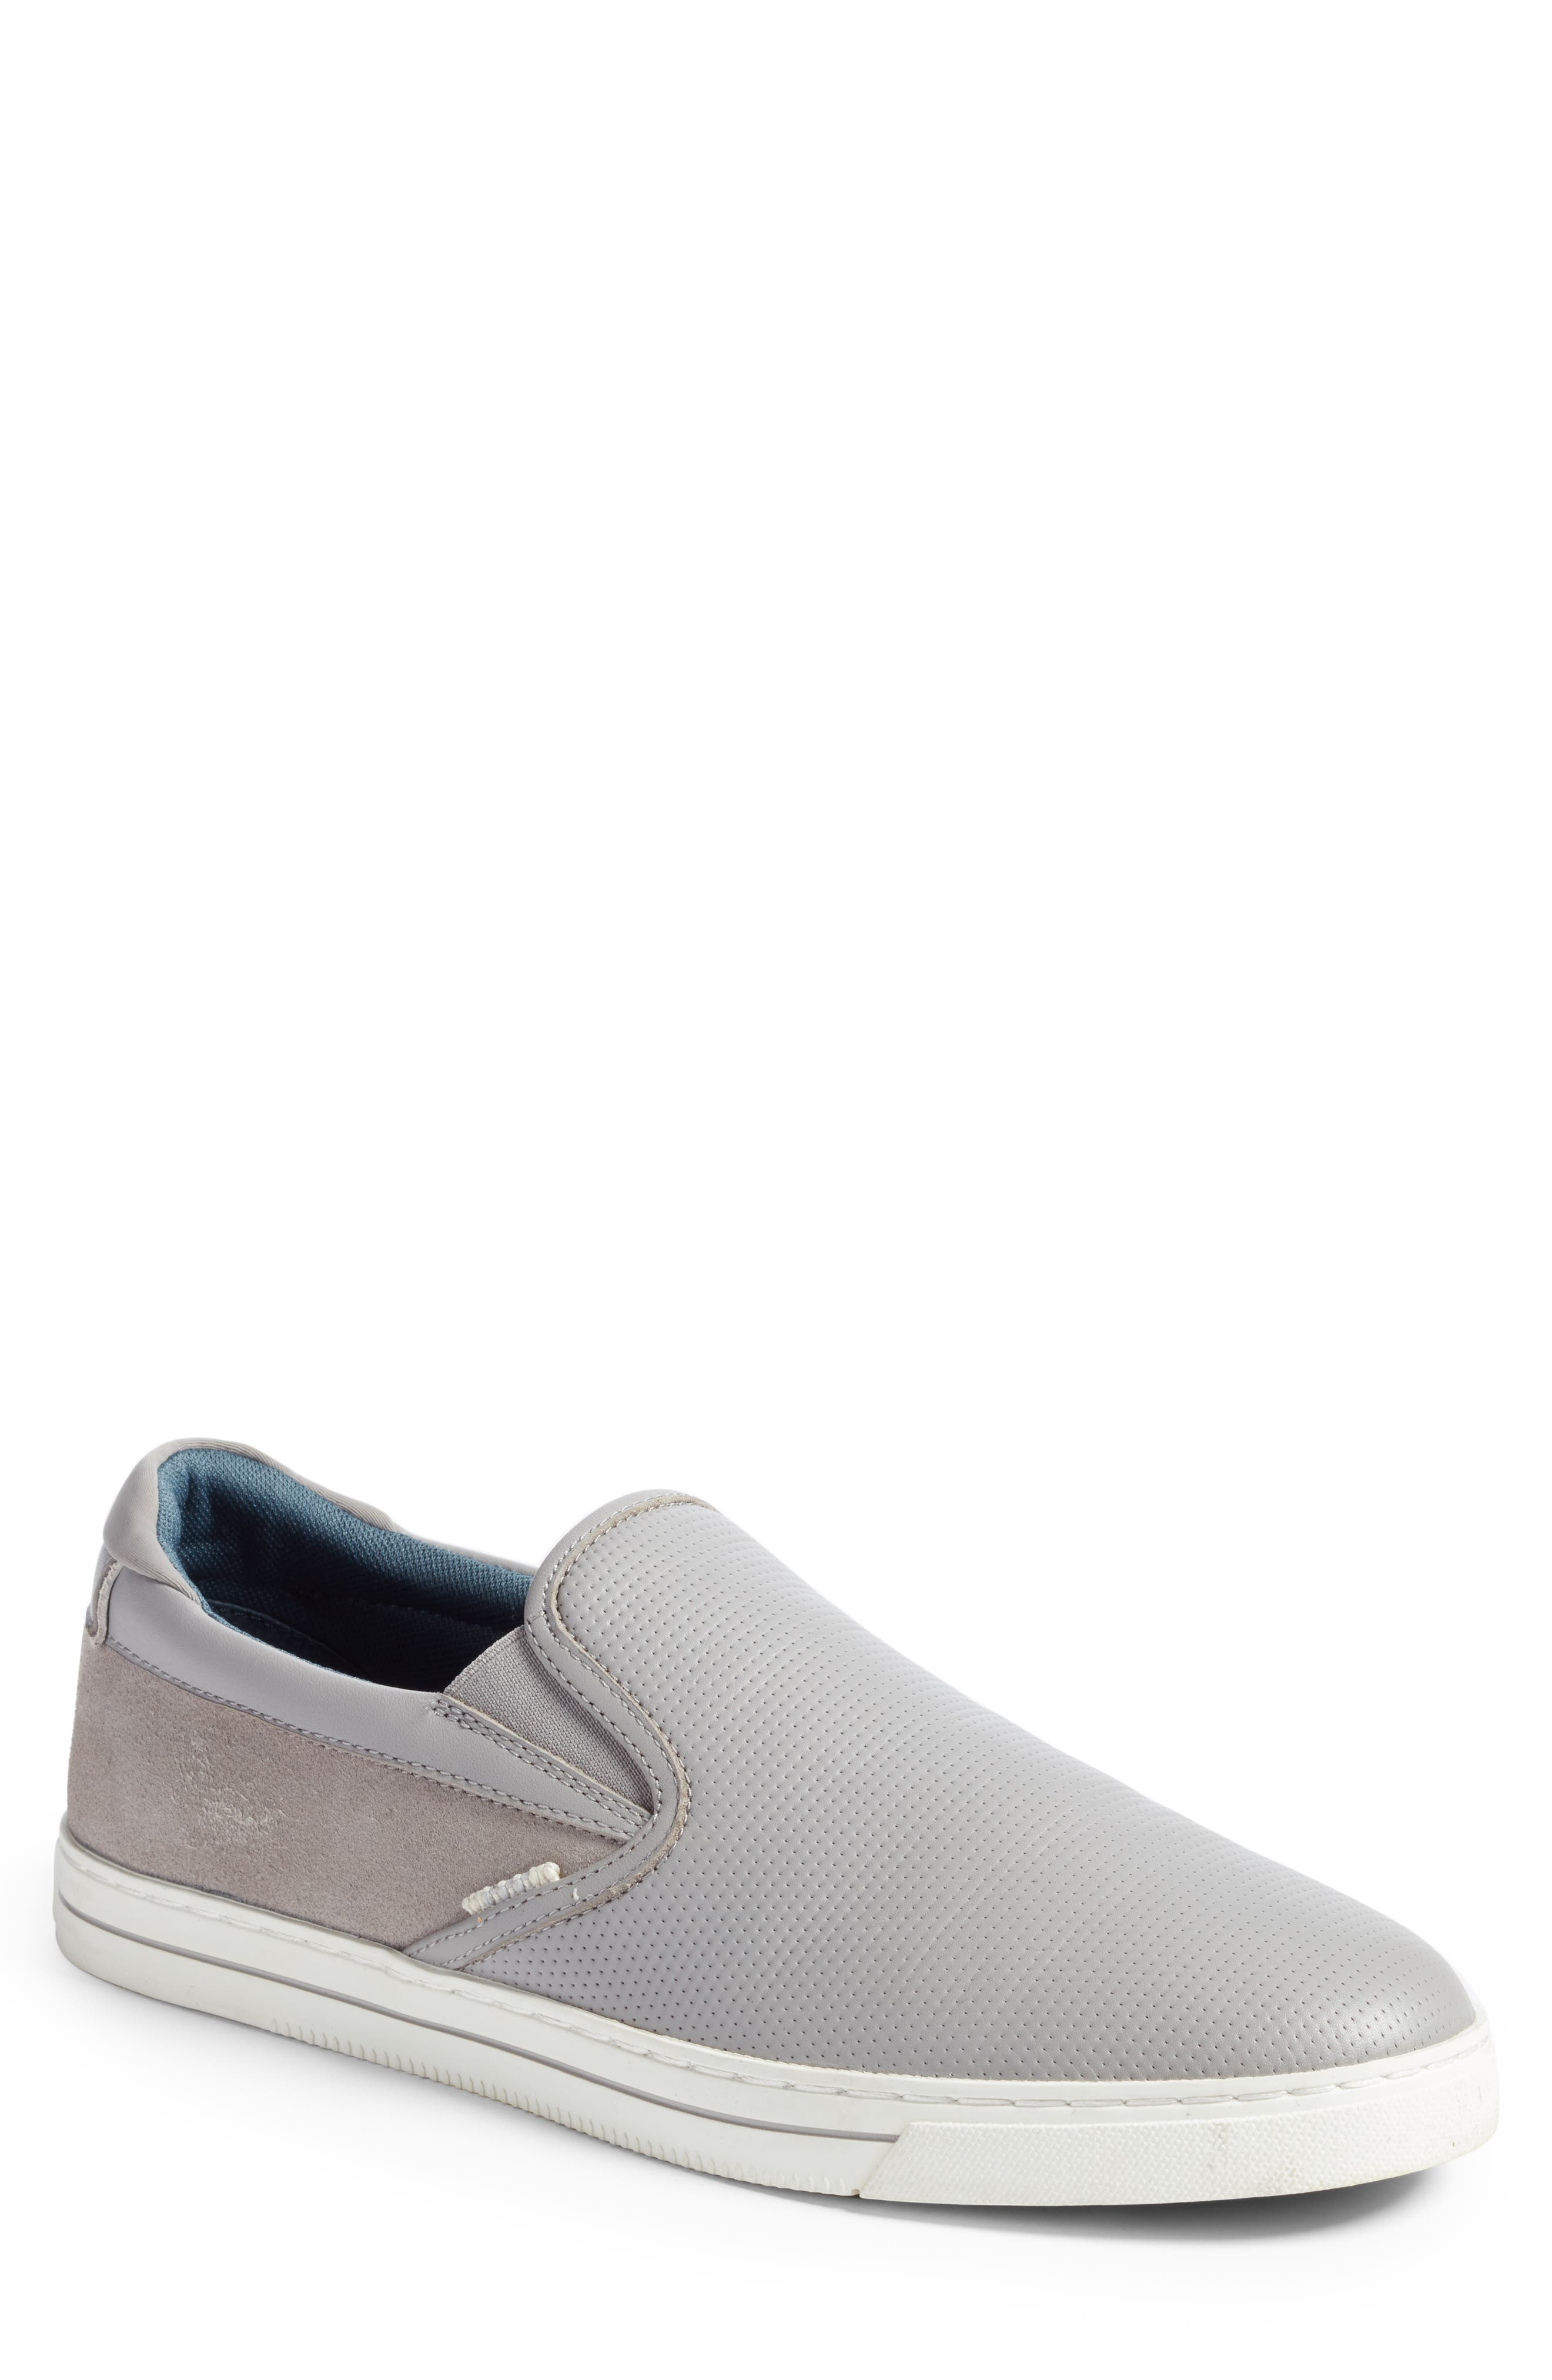 Patroy Perforated Slip-On Sneaker,                             Main thumbnail 1, color,                             LIGHT GREY LEATHER